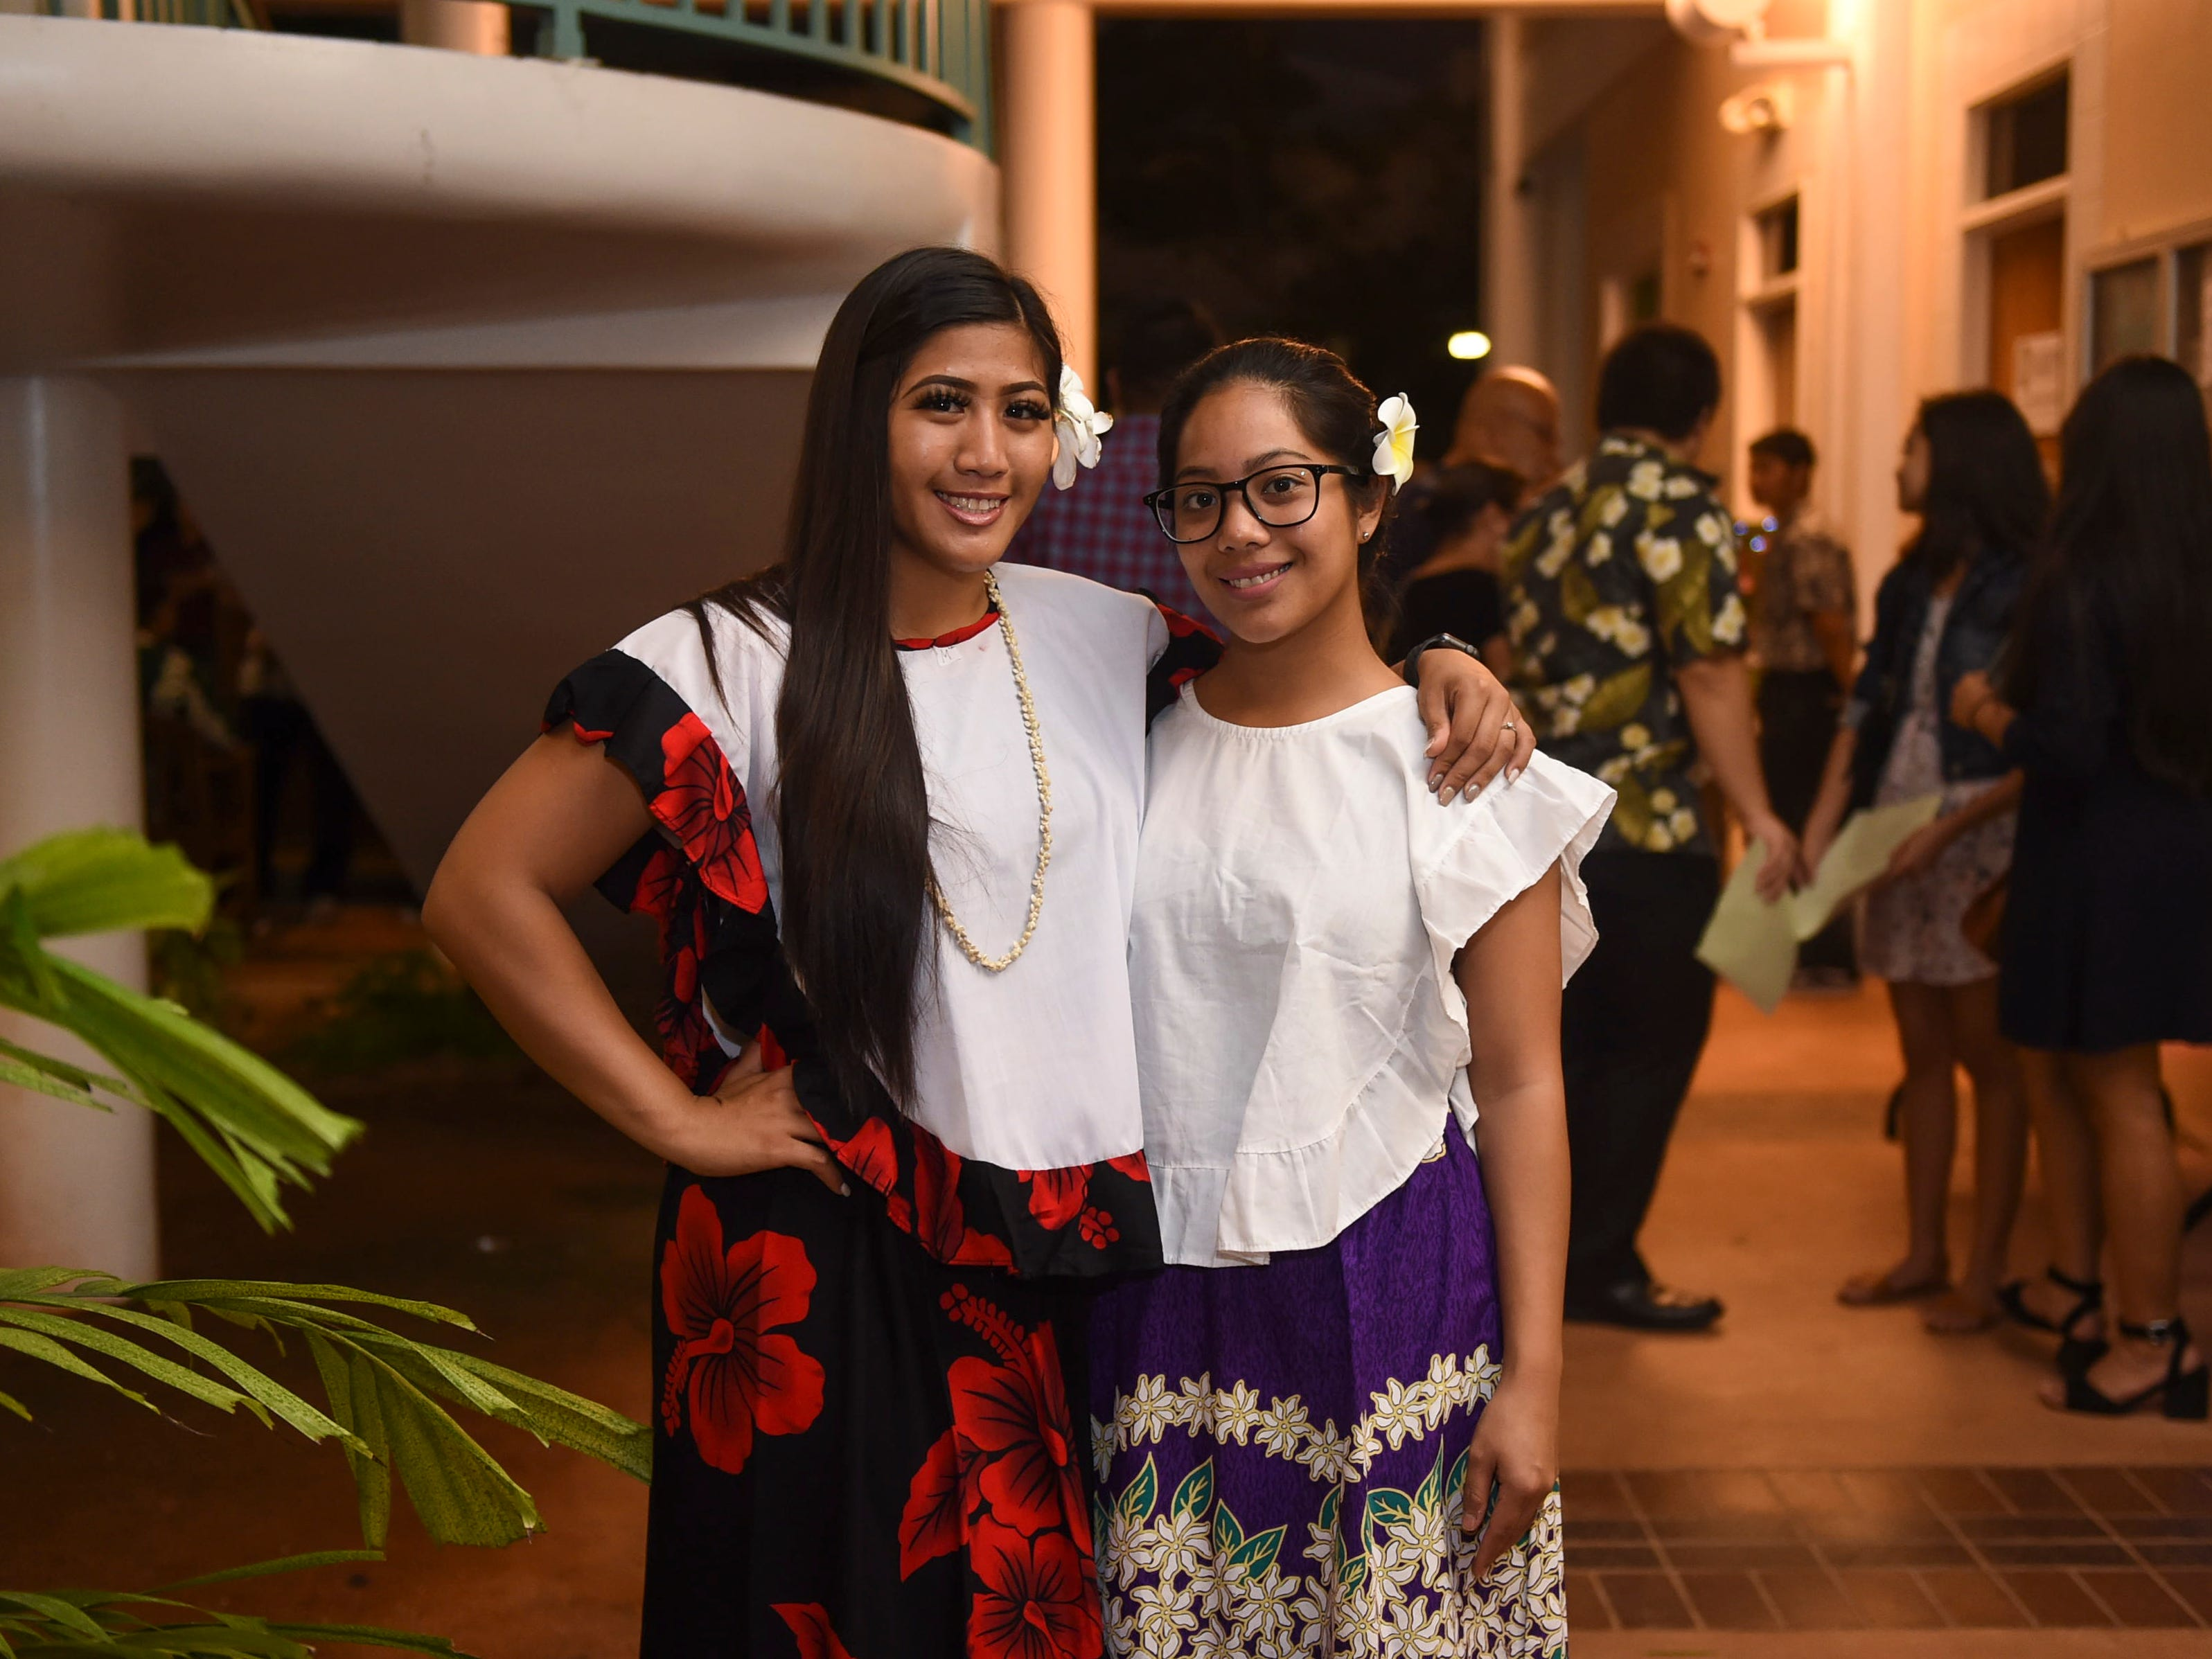 Students Celineeann Garcia, left, and Caitlyn Pangelinan pose in their mestizas during the University of Guam Chamorro Studies Program's 2018 Christmas Celebration, Puengen Minagof Noche Buena! at the UOG Humanities and Social Sciences Building on Nov. 30, 2018.